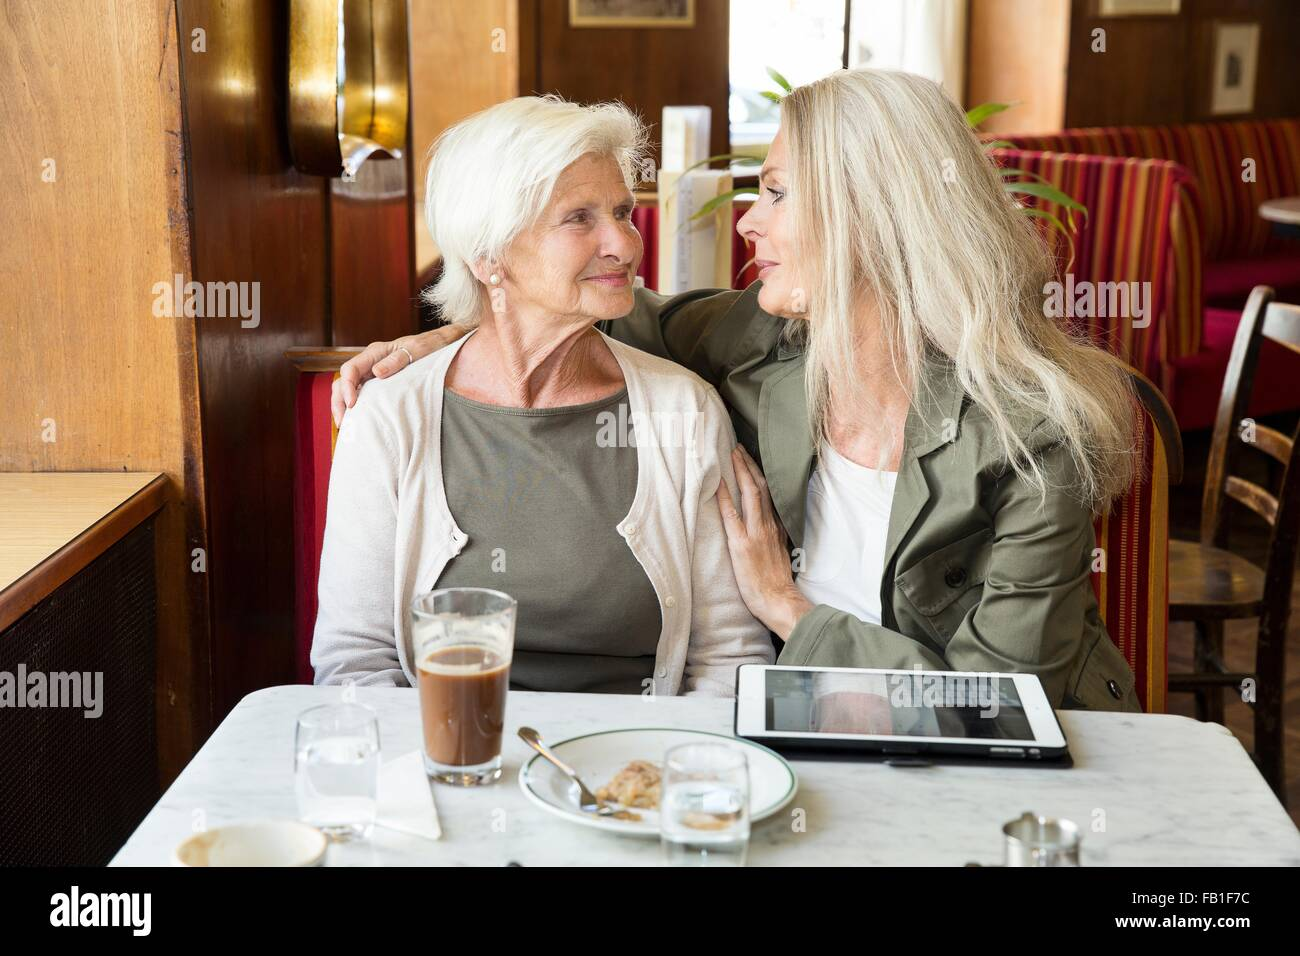 Mother and daughter sitting together in cafe, daughter's arm around mother, digital tablet on table - Stock Image